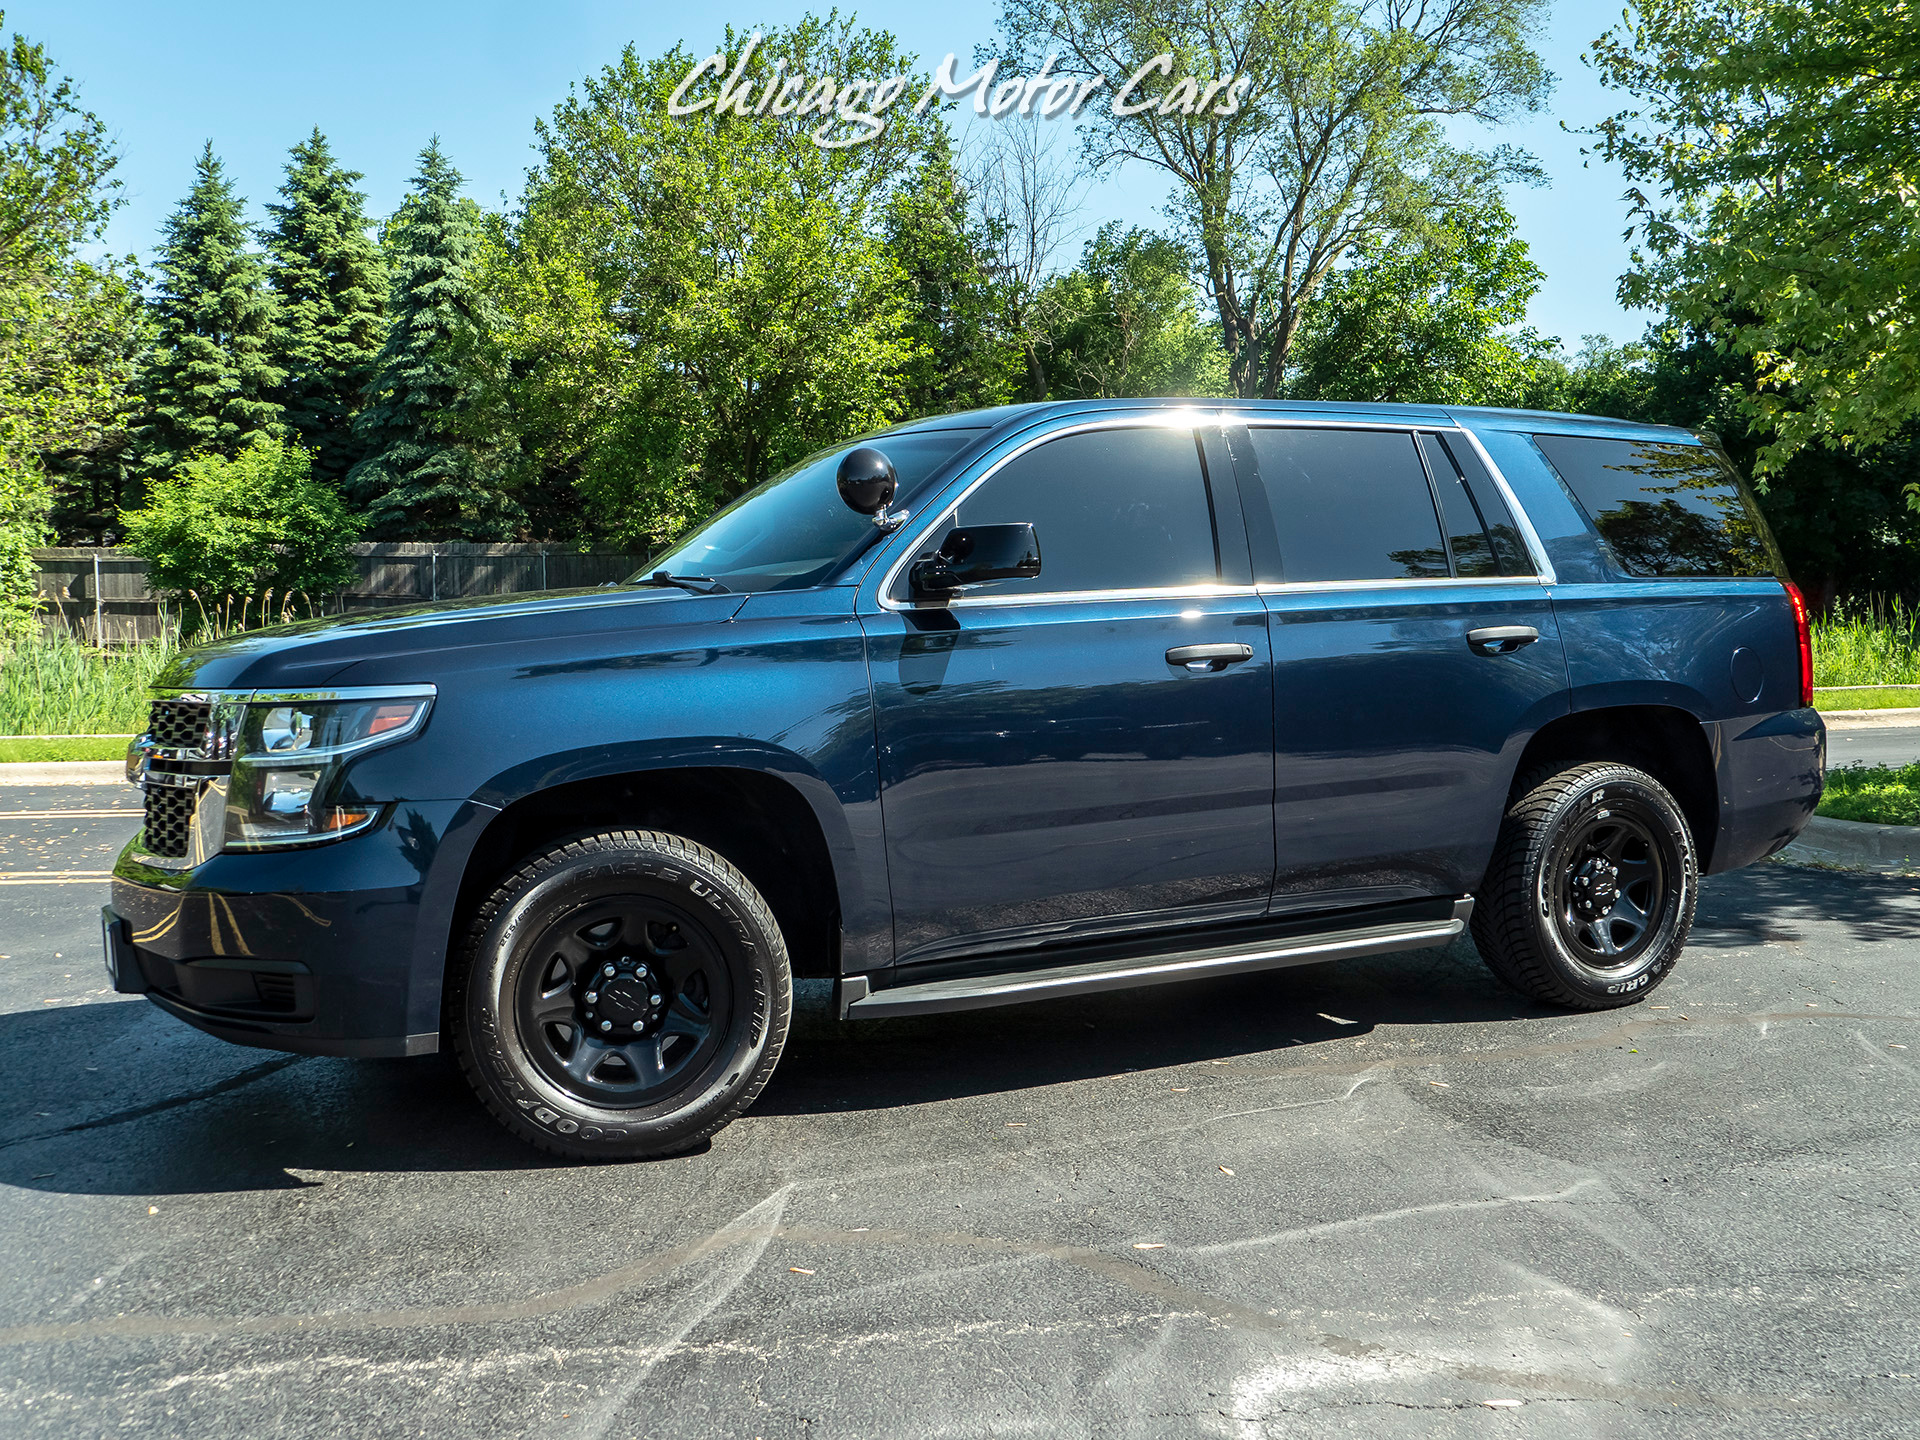 2015 Tahoe For Sale >> Used 2015 Chevrolet Tahoe Police For Sale 23 800